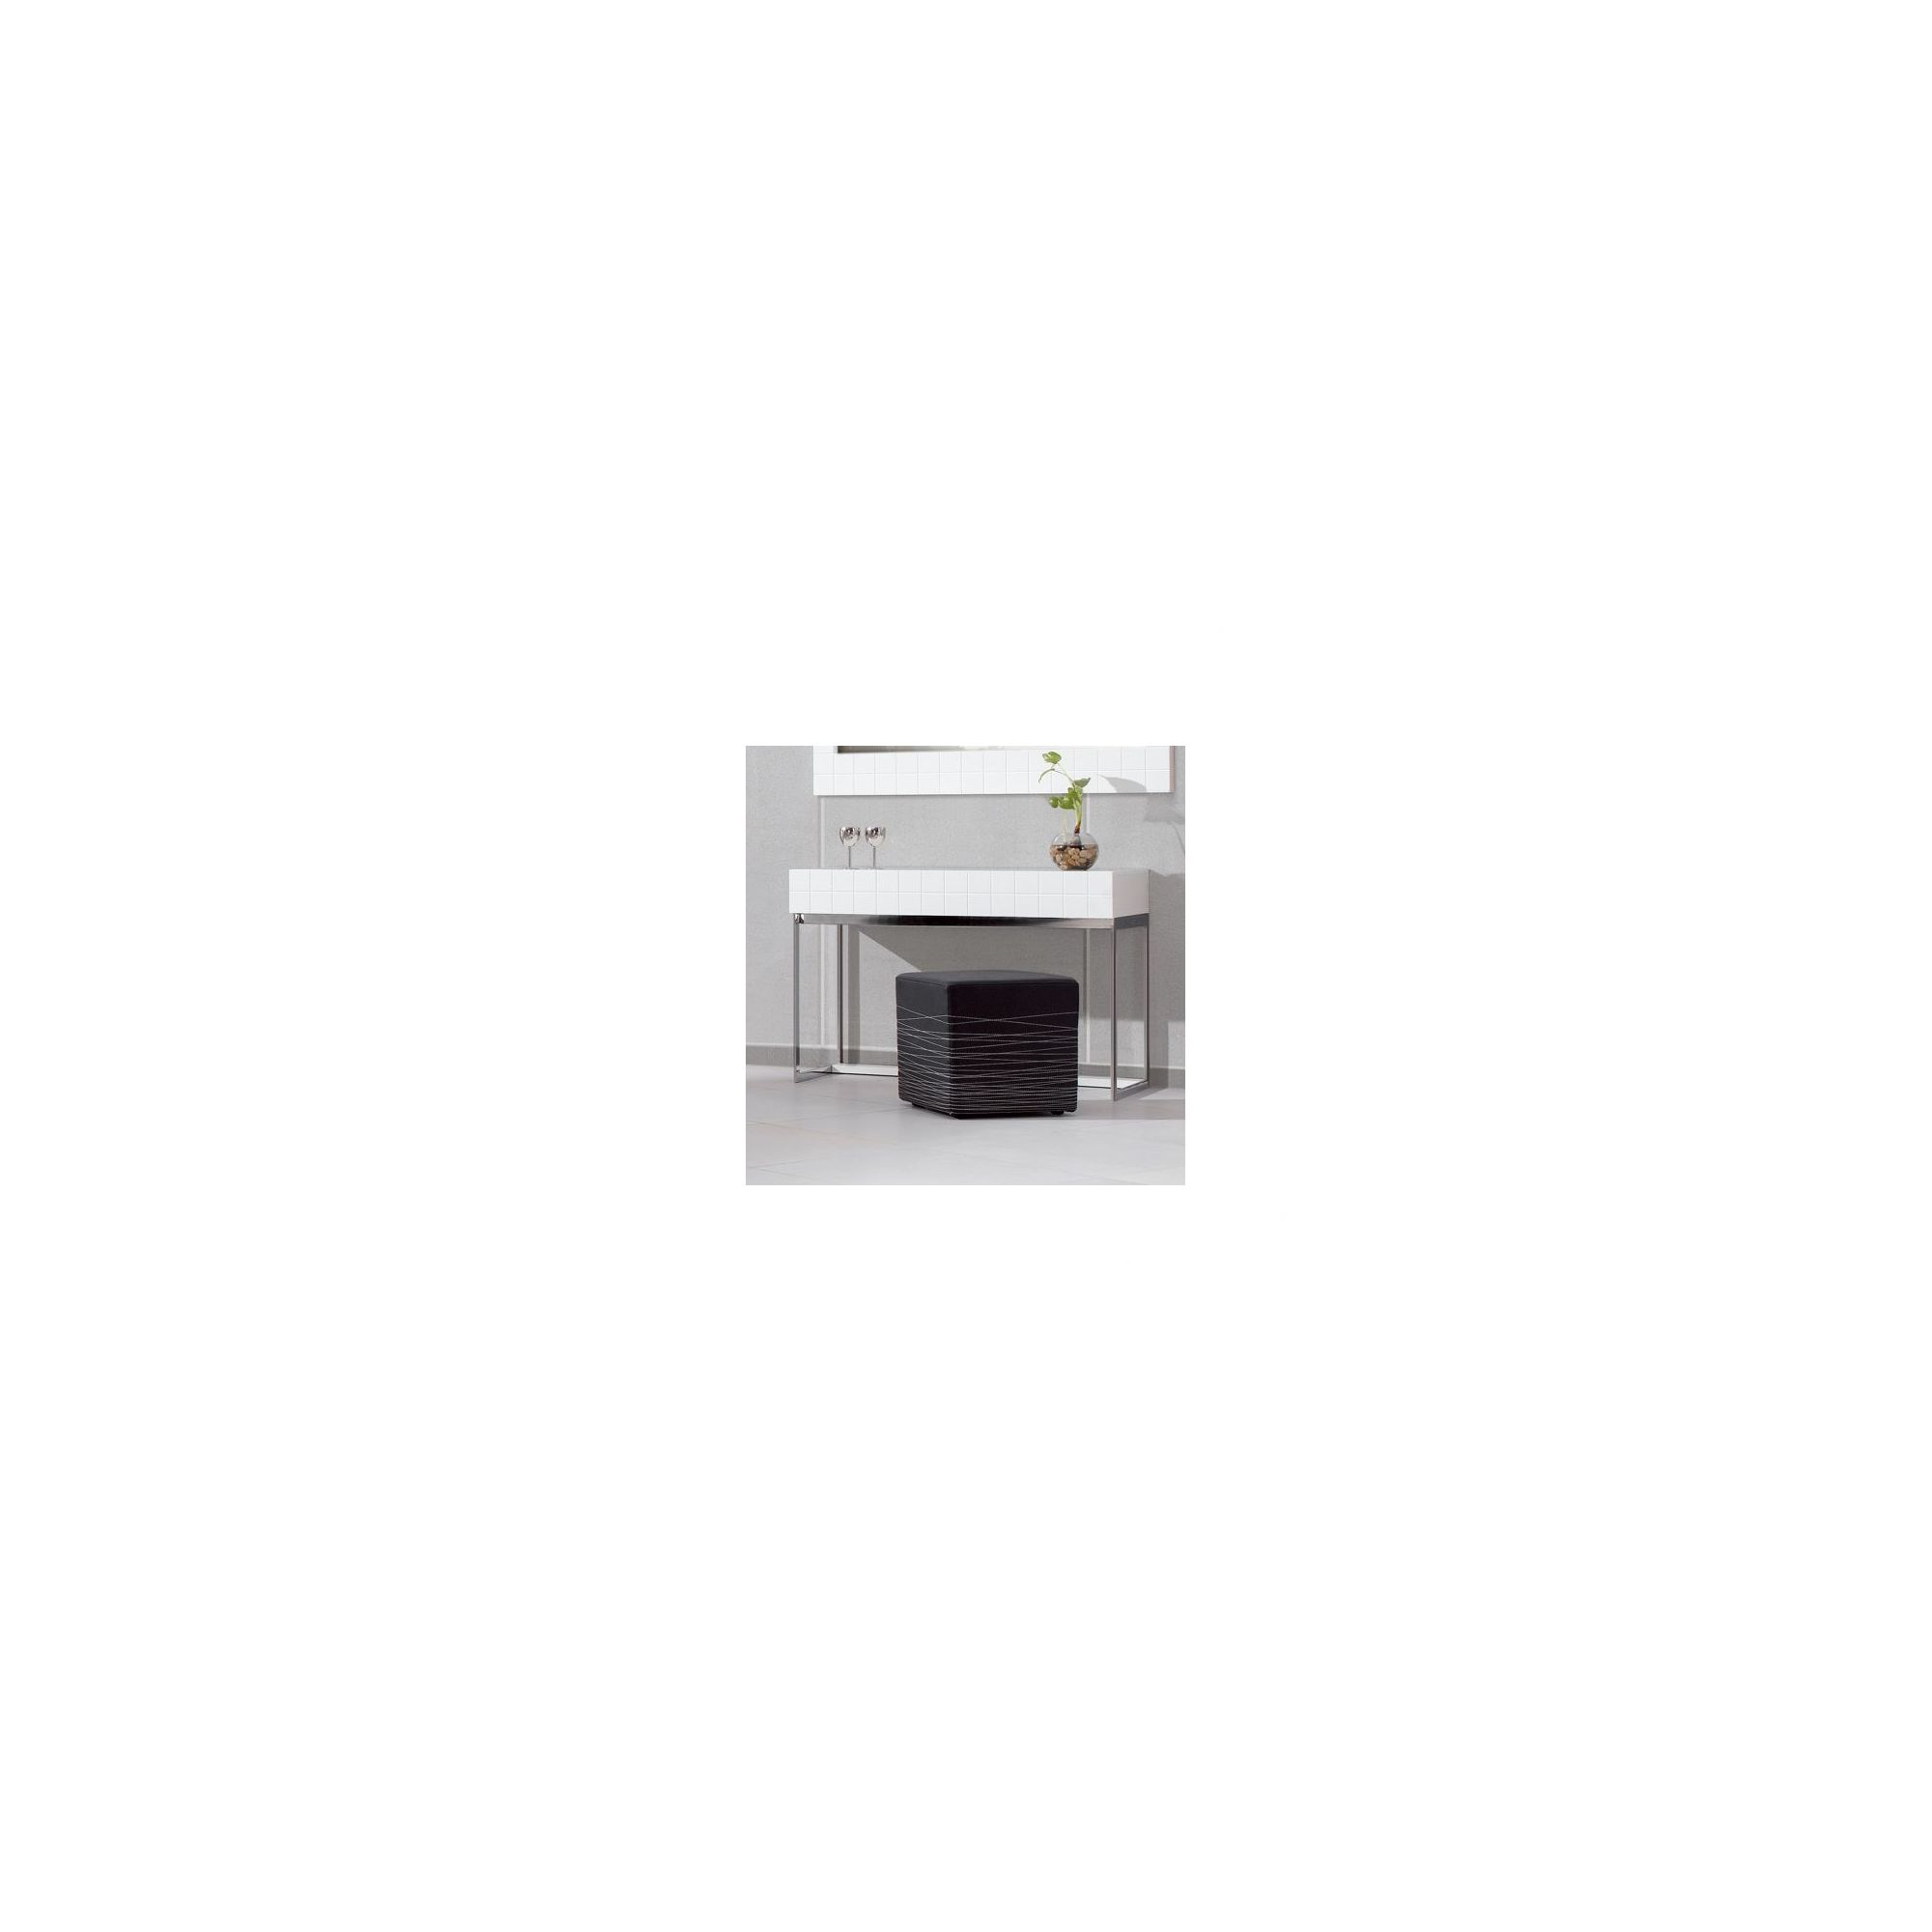 Gillmore Space Barcelona Dressing Table - White Lacquer (Matt) at Tesco Direct